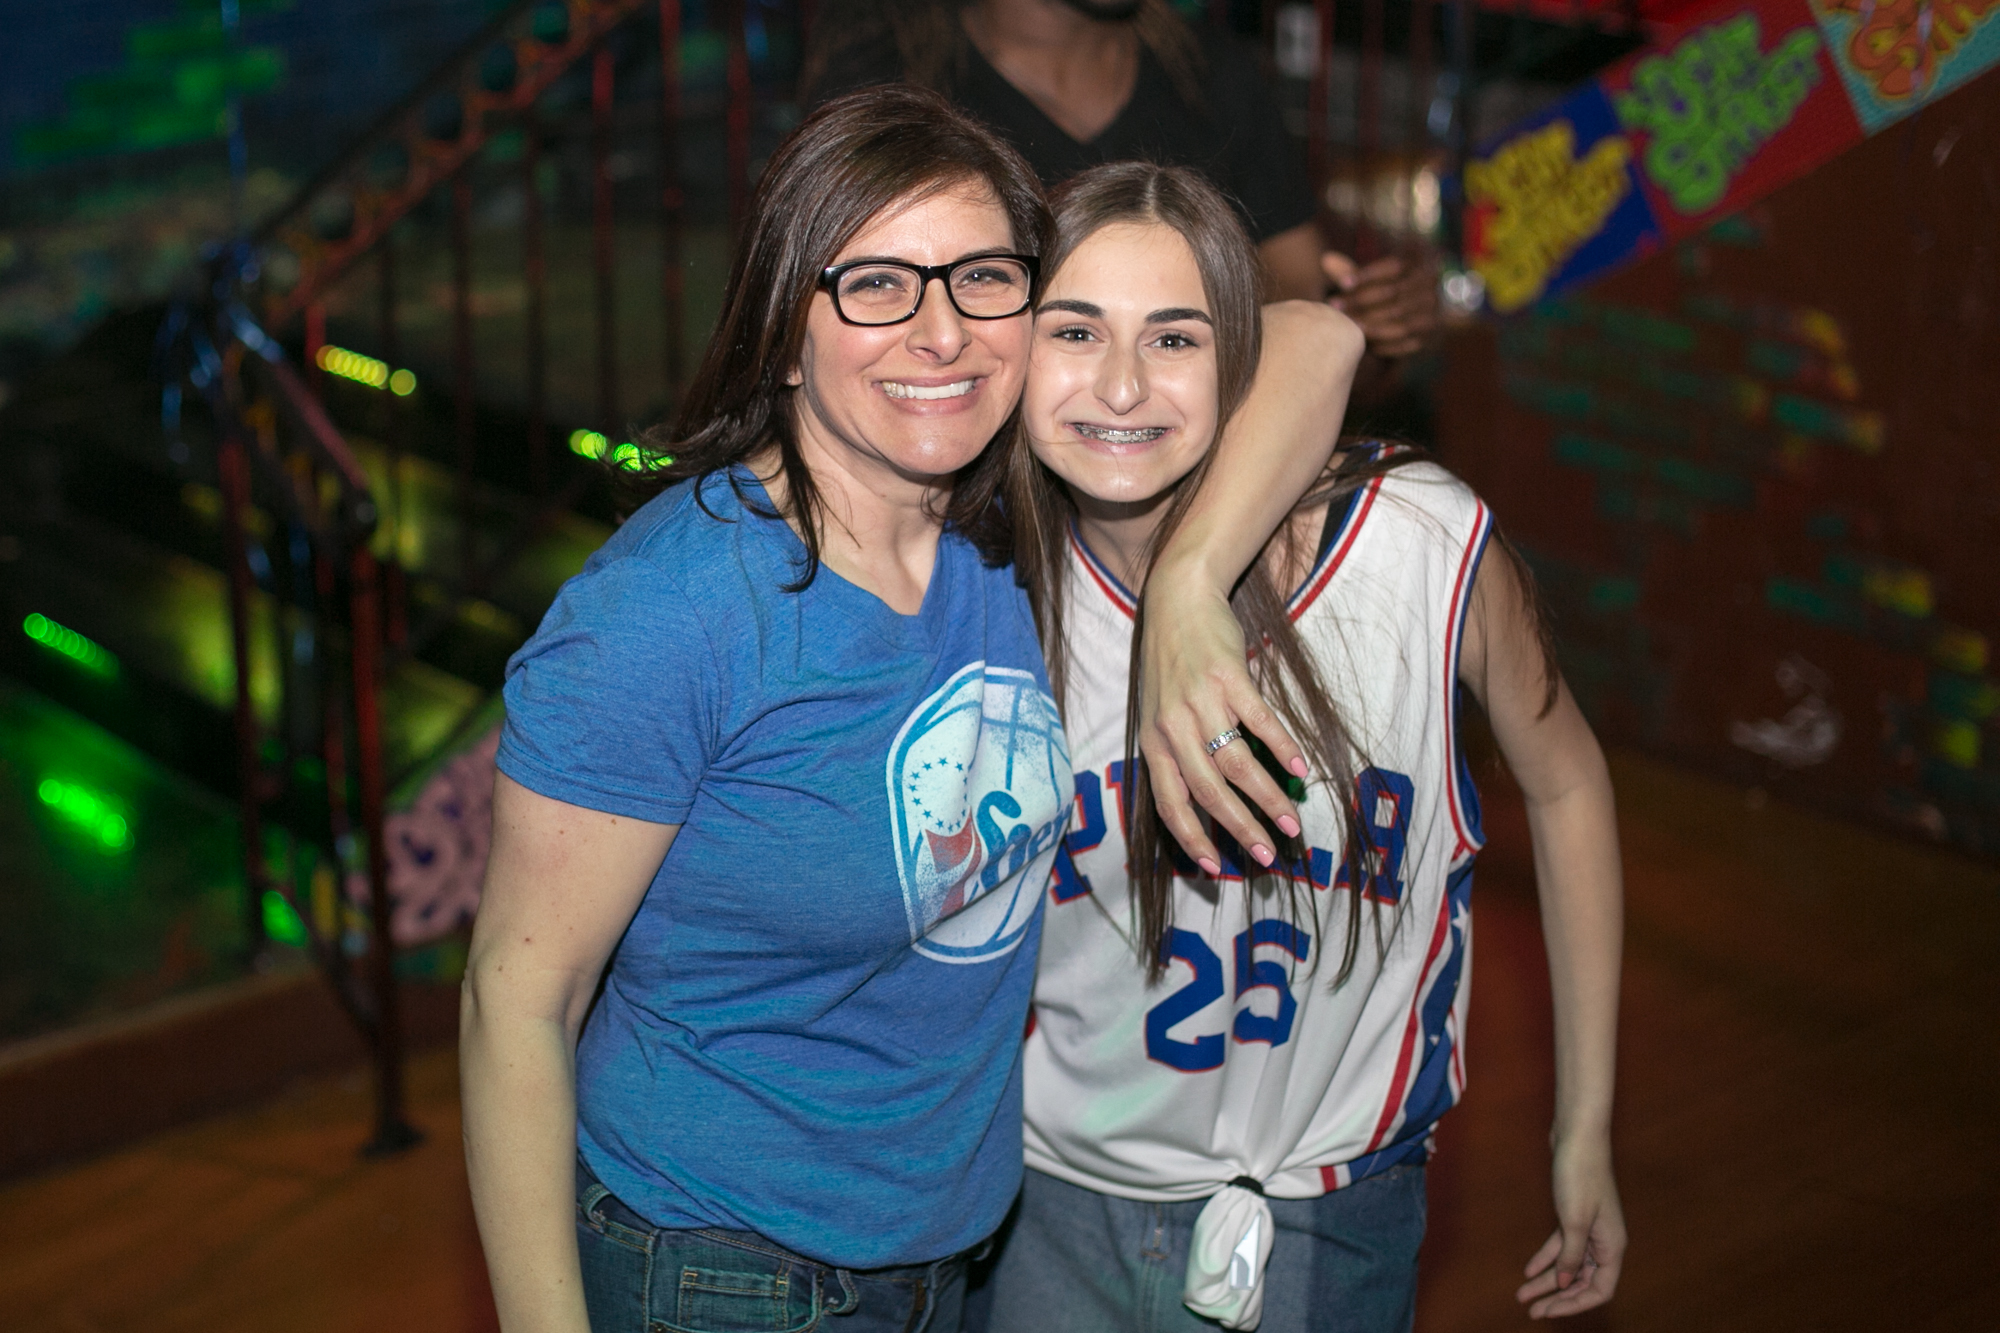 Max_Bar_Mitzvah_Preview (46 of 68).jpg